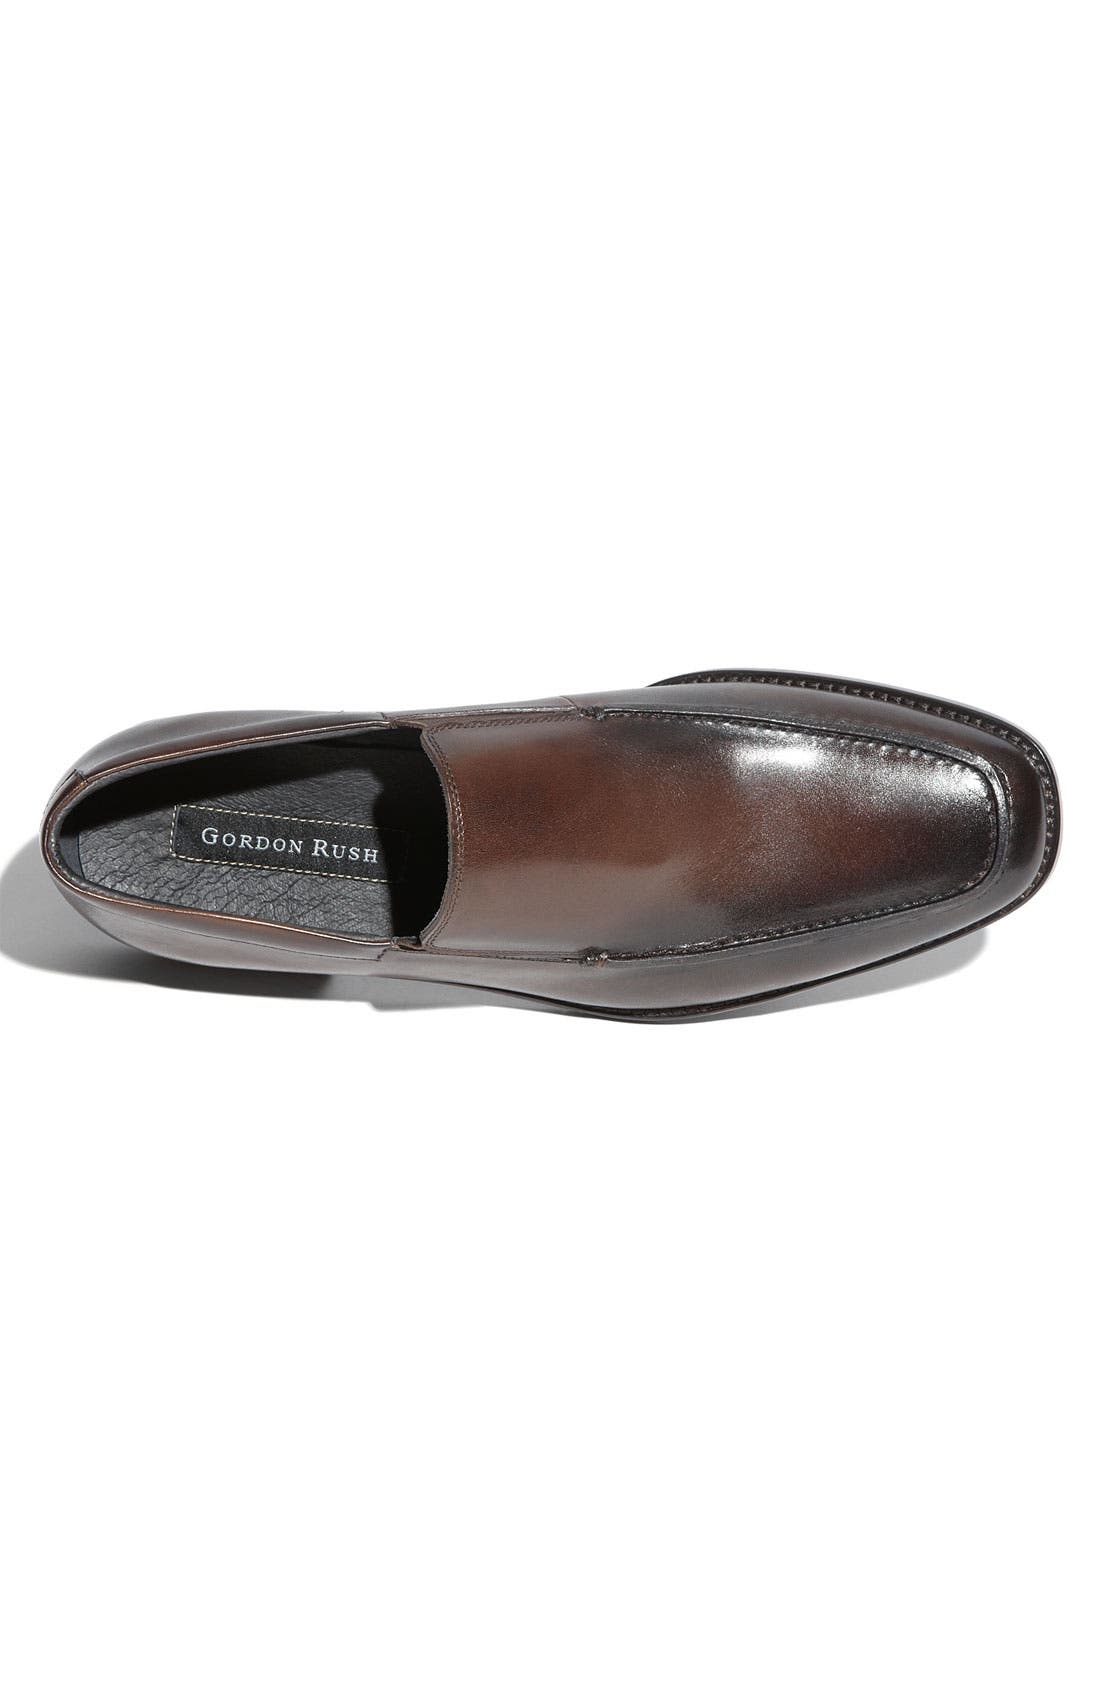 Alternate Image 3  - Gordon Rush 'Madison' Venetian Loafer (Men)